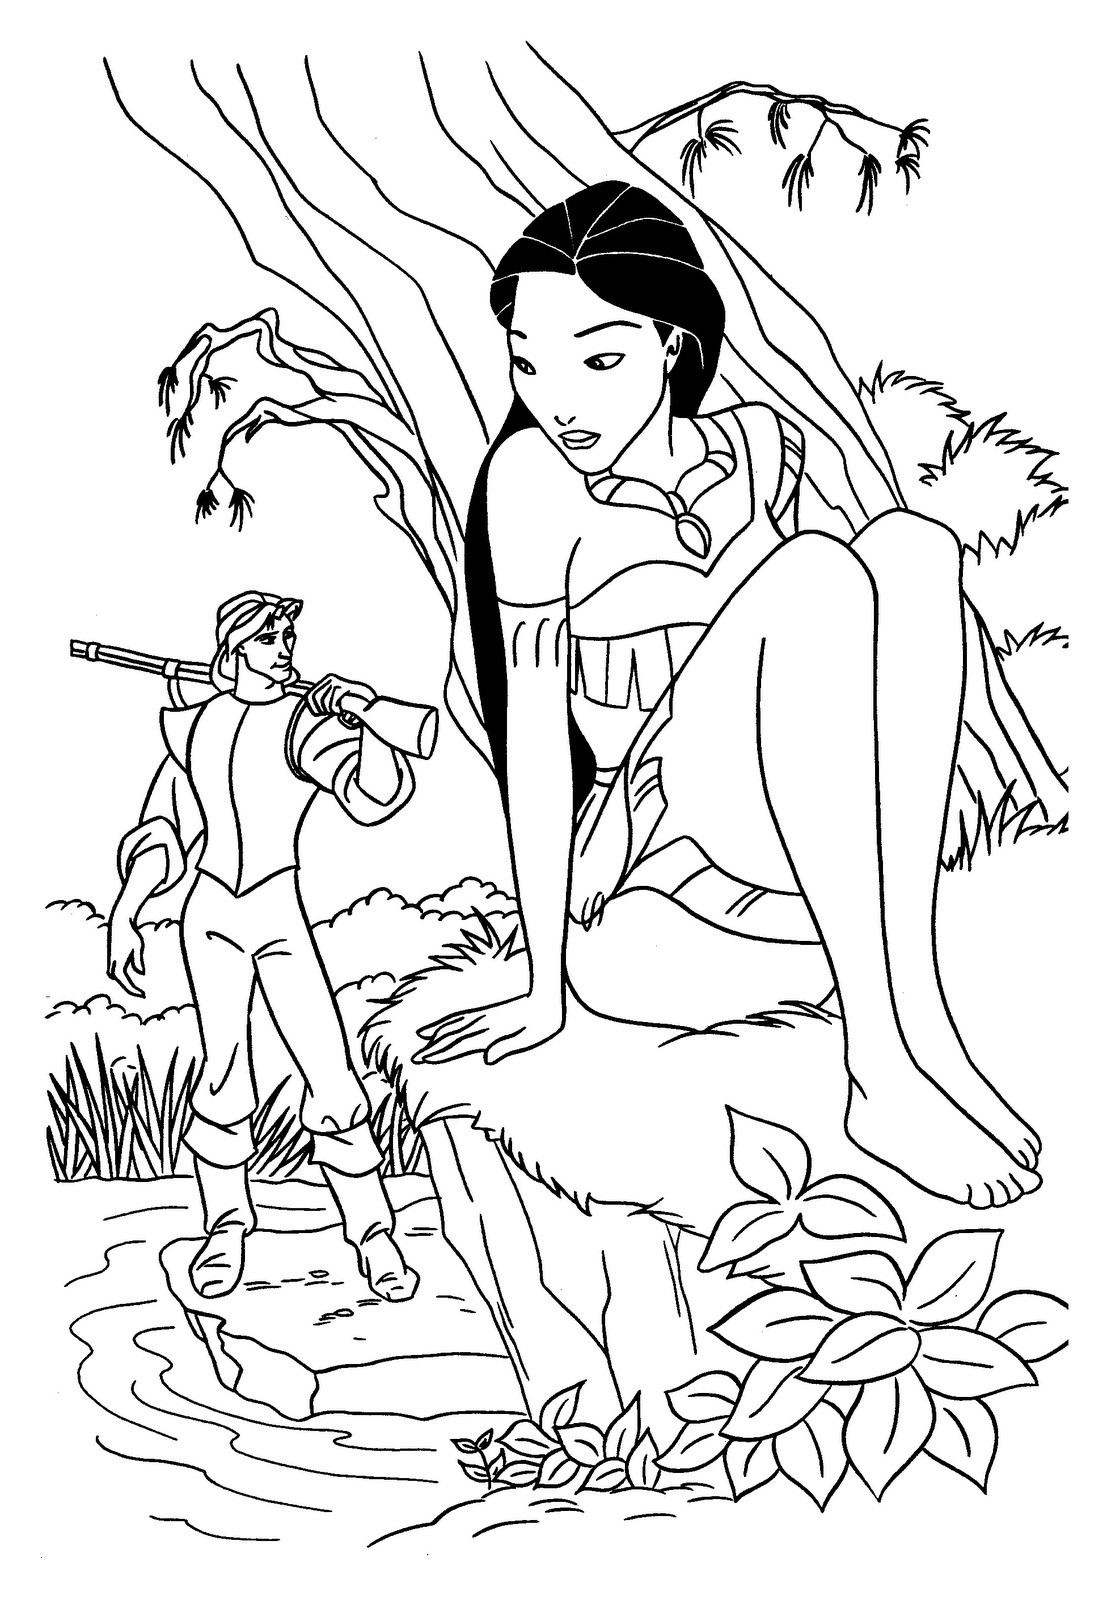 disney-princess-coloring-pages-pocahontas-of-disney-princess-coloring-pages-pocahontas Disney Princess Coloring Pages Pocahontas Cartoon